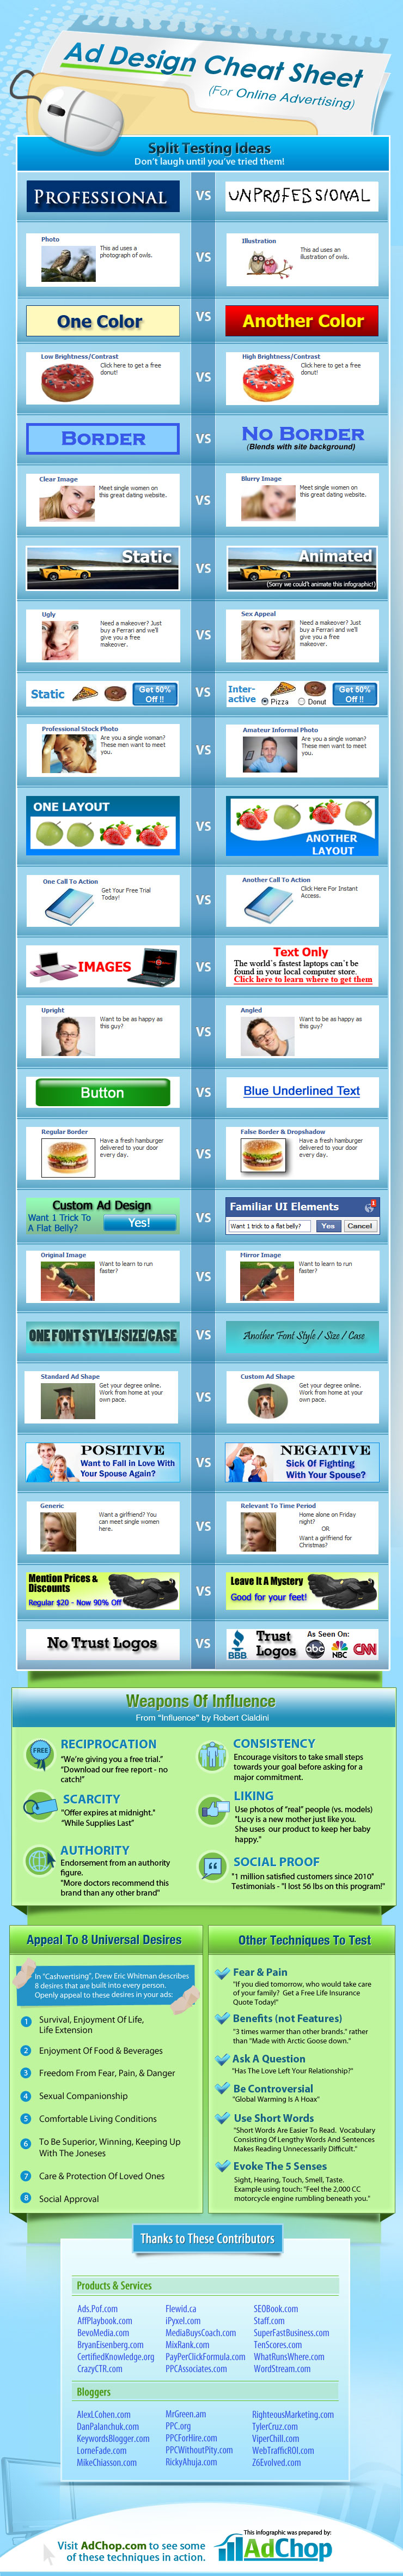 ad design cheat sheet infographic1